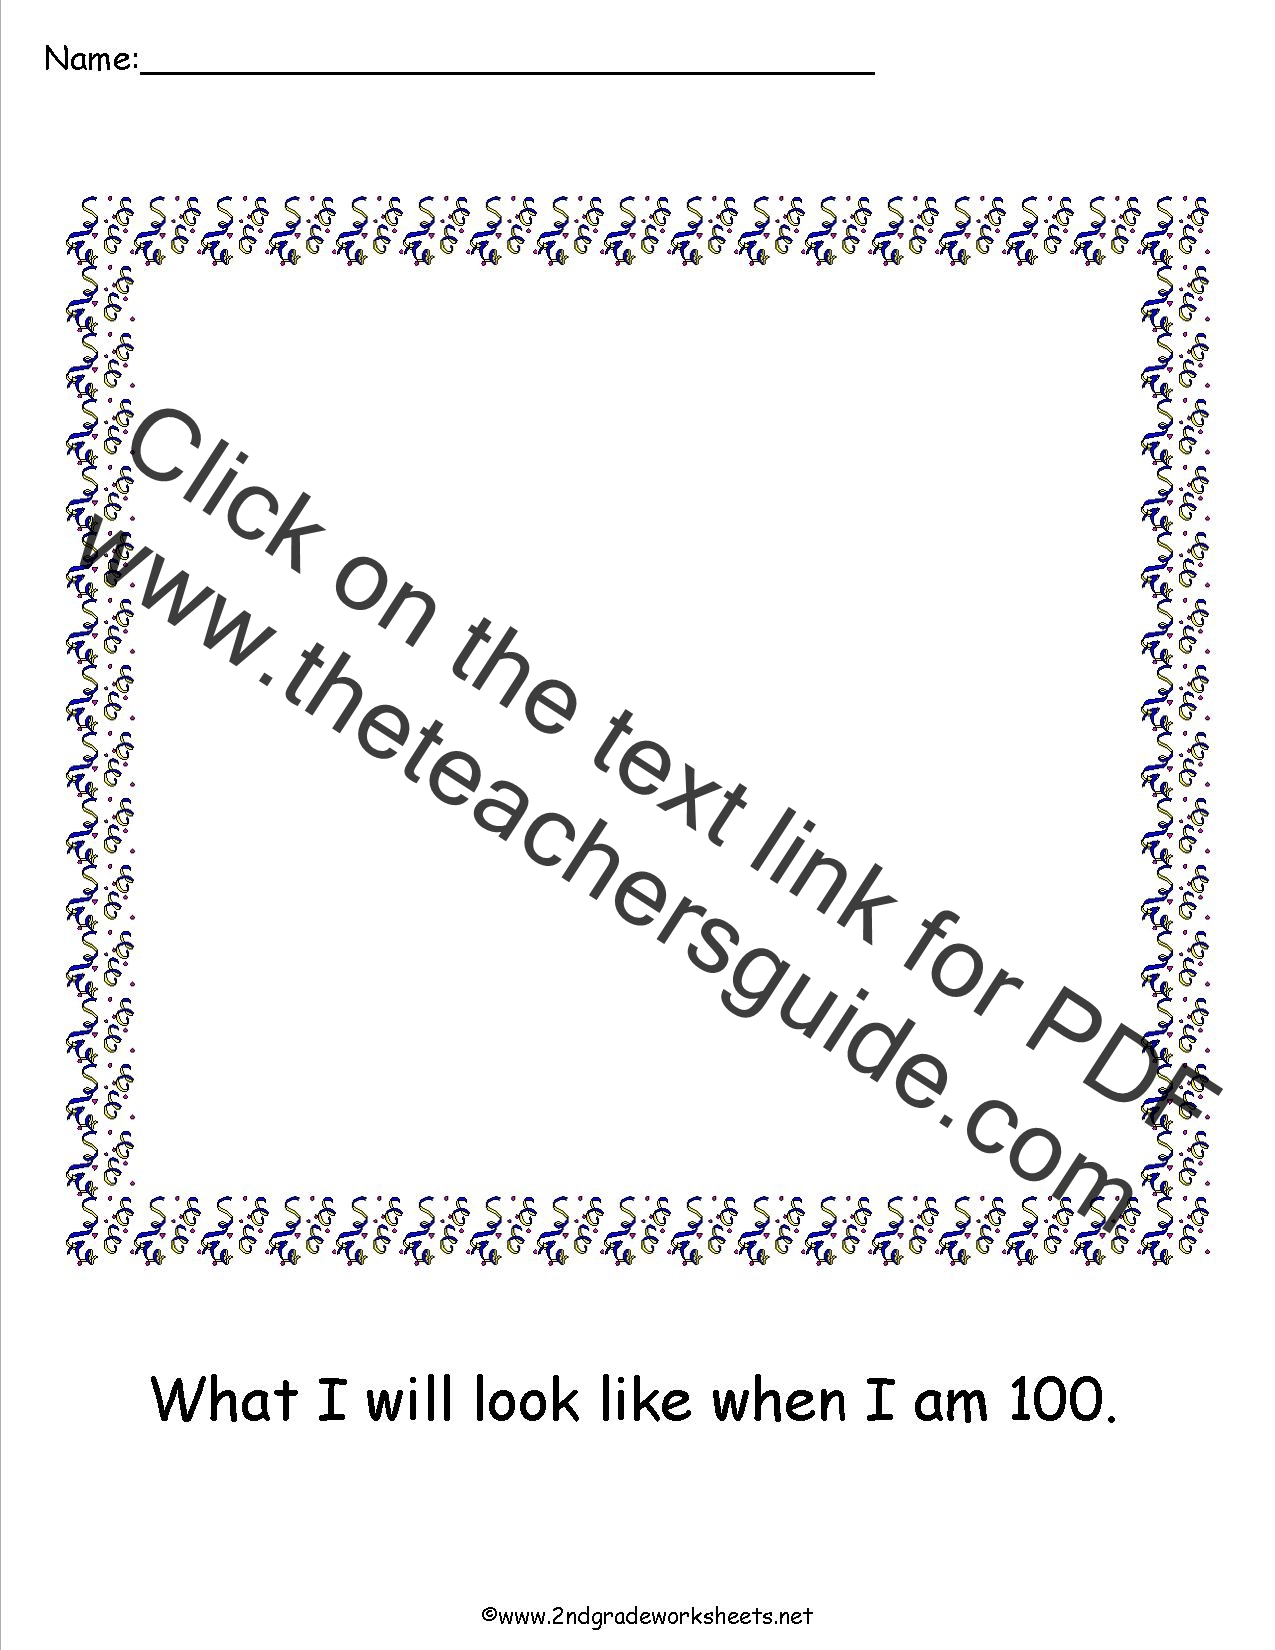 100th Day of School Worksheets and Printouts – 100th Day of School Worksheets